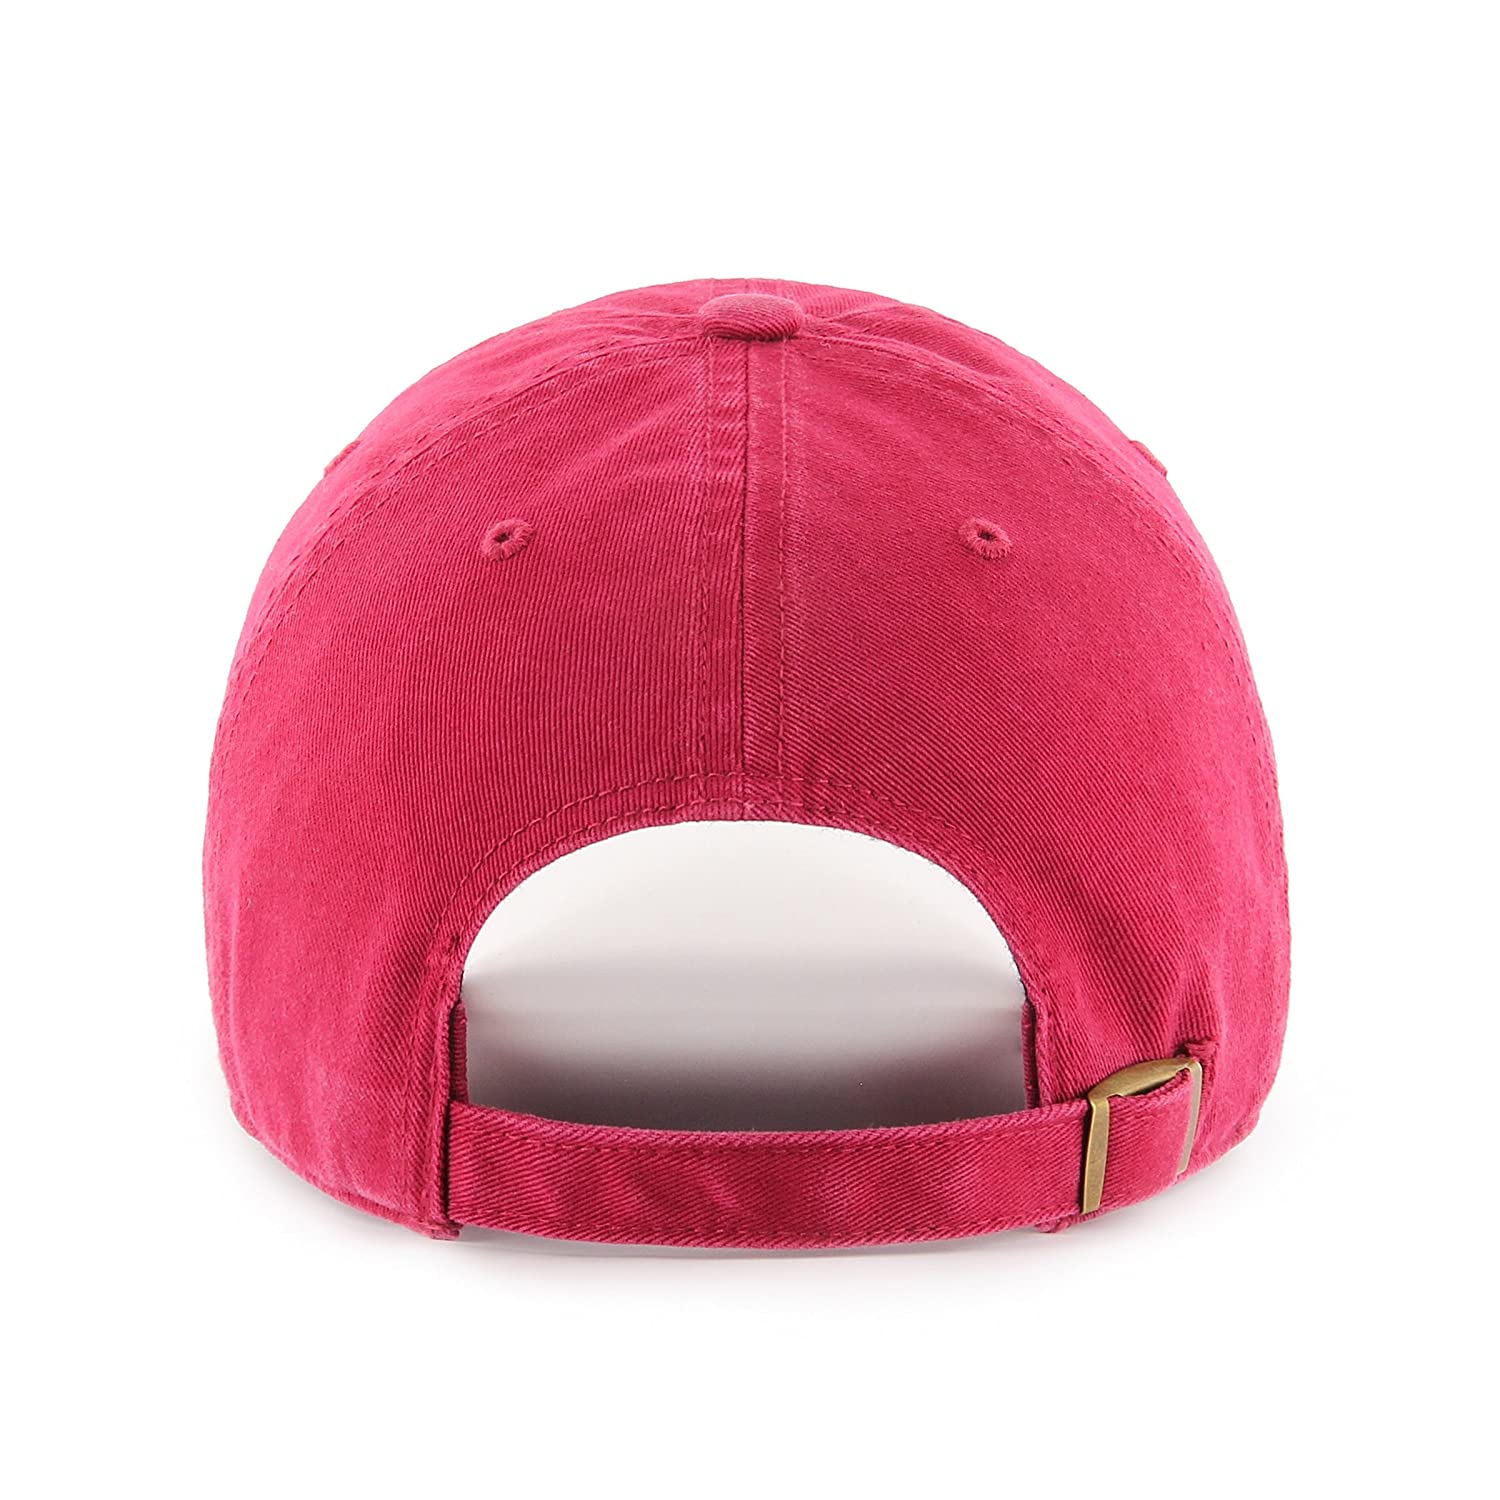 5d2ad536710a4 Gorra ajustable NFL Challenger OTS para mujer